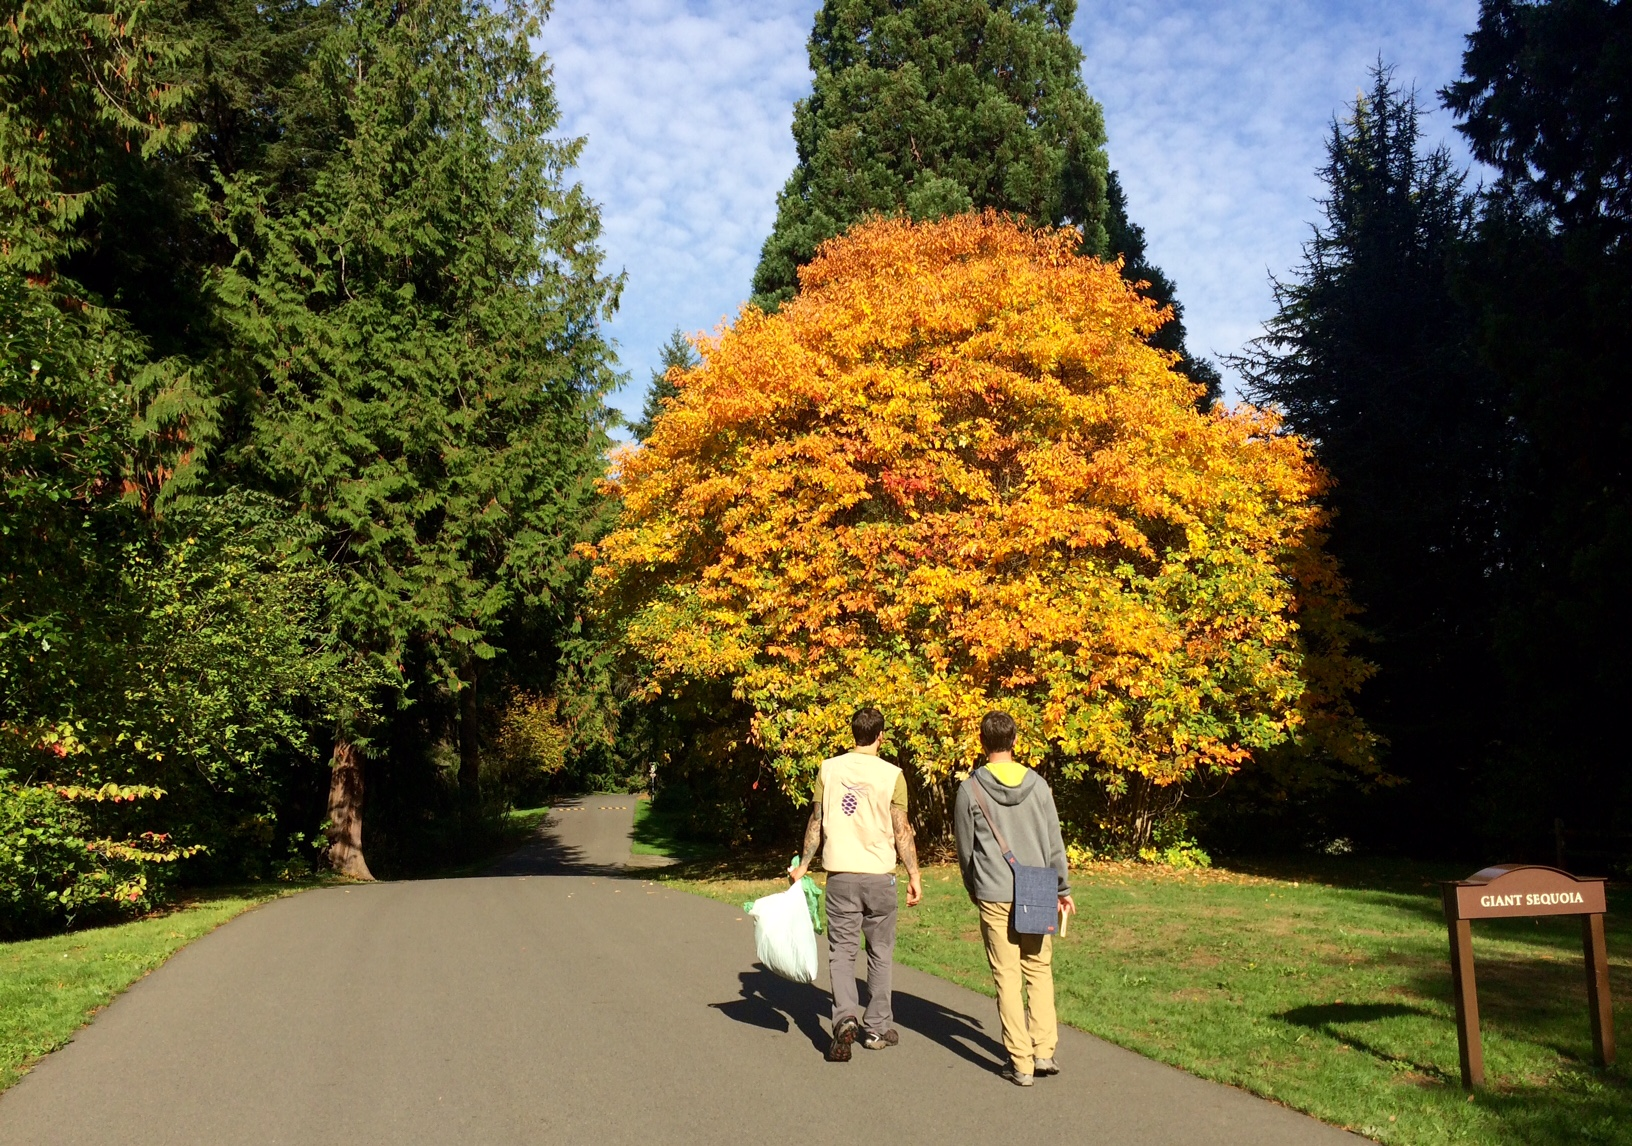 Volunteers collecting Sassafras with fall color in the Washington Park Arboretum